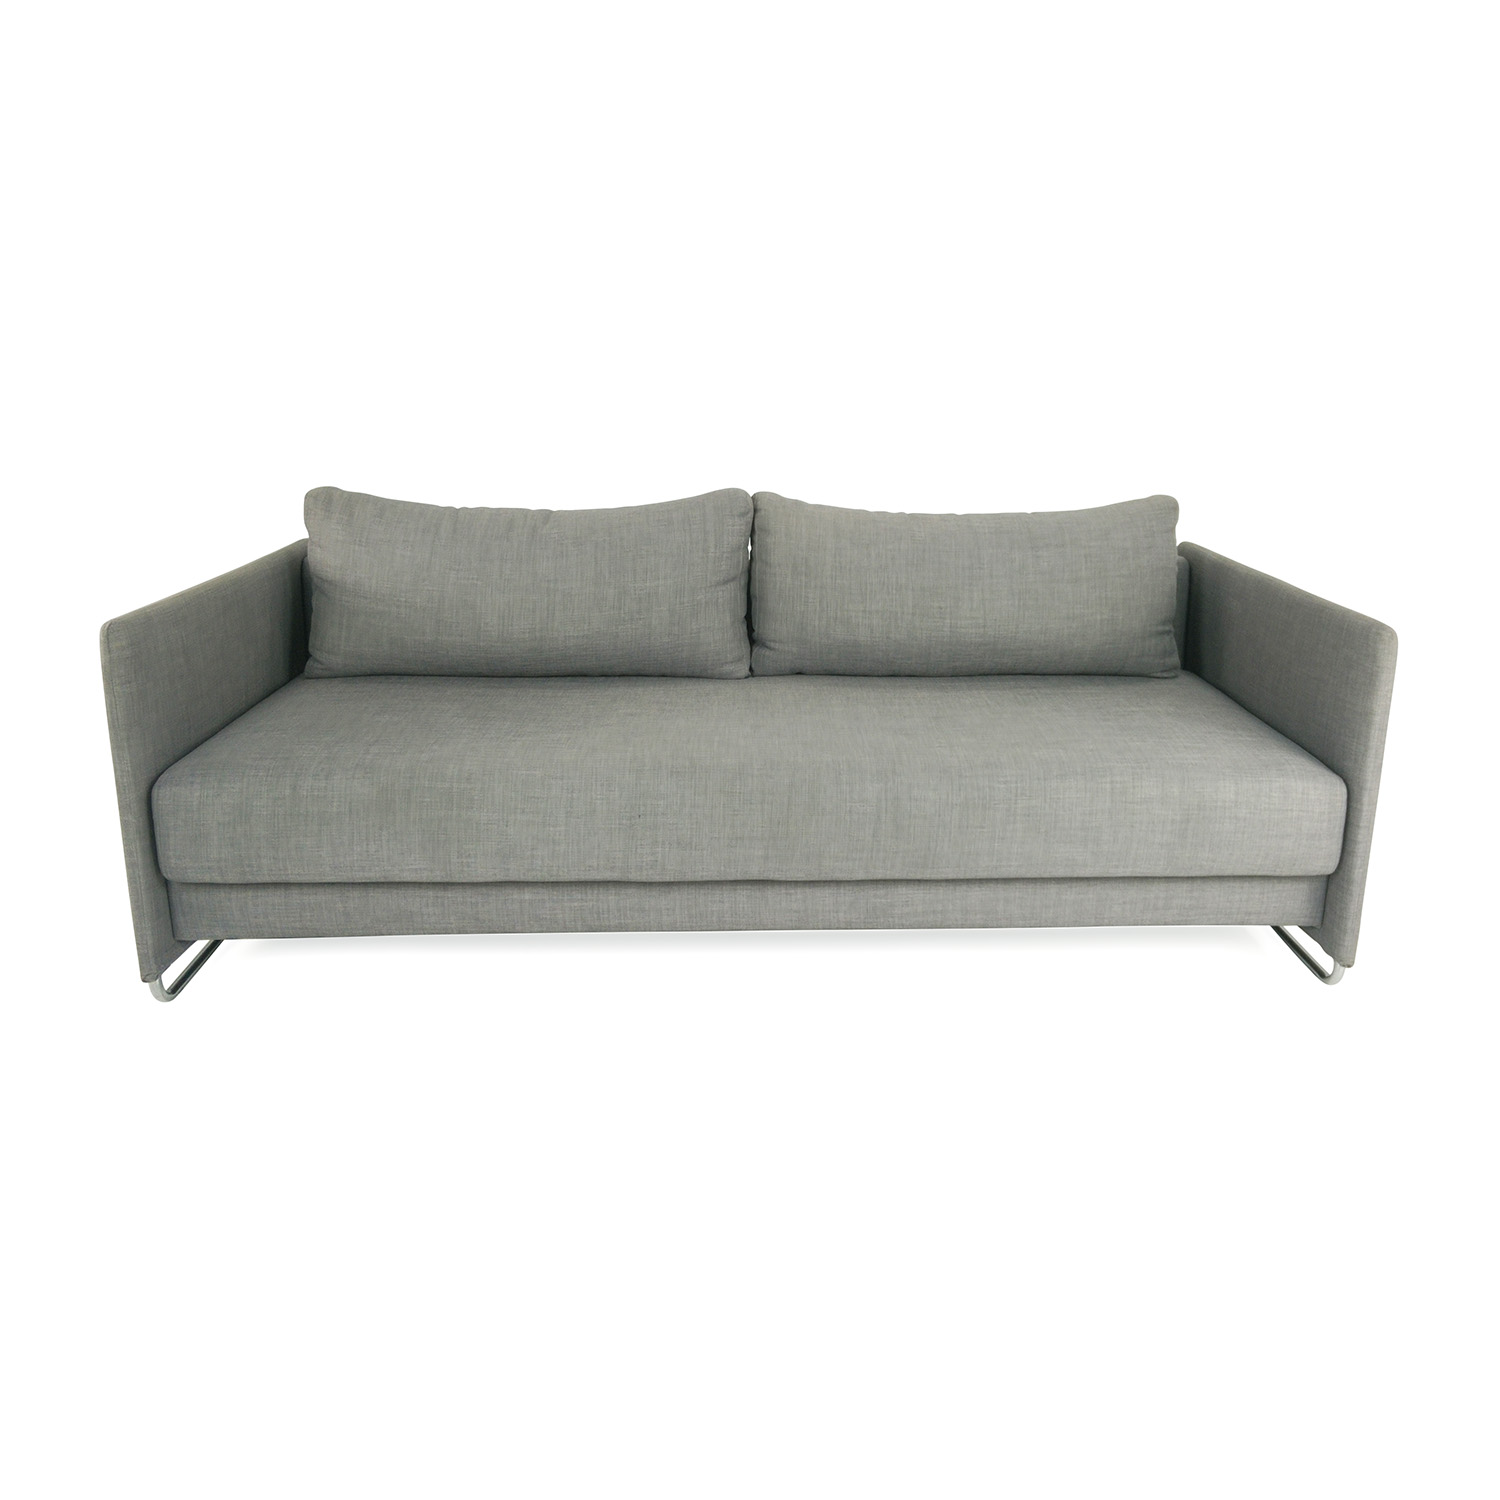 sofa bed second hand bristol next day beds futons